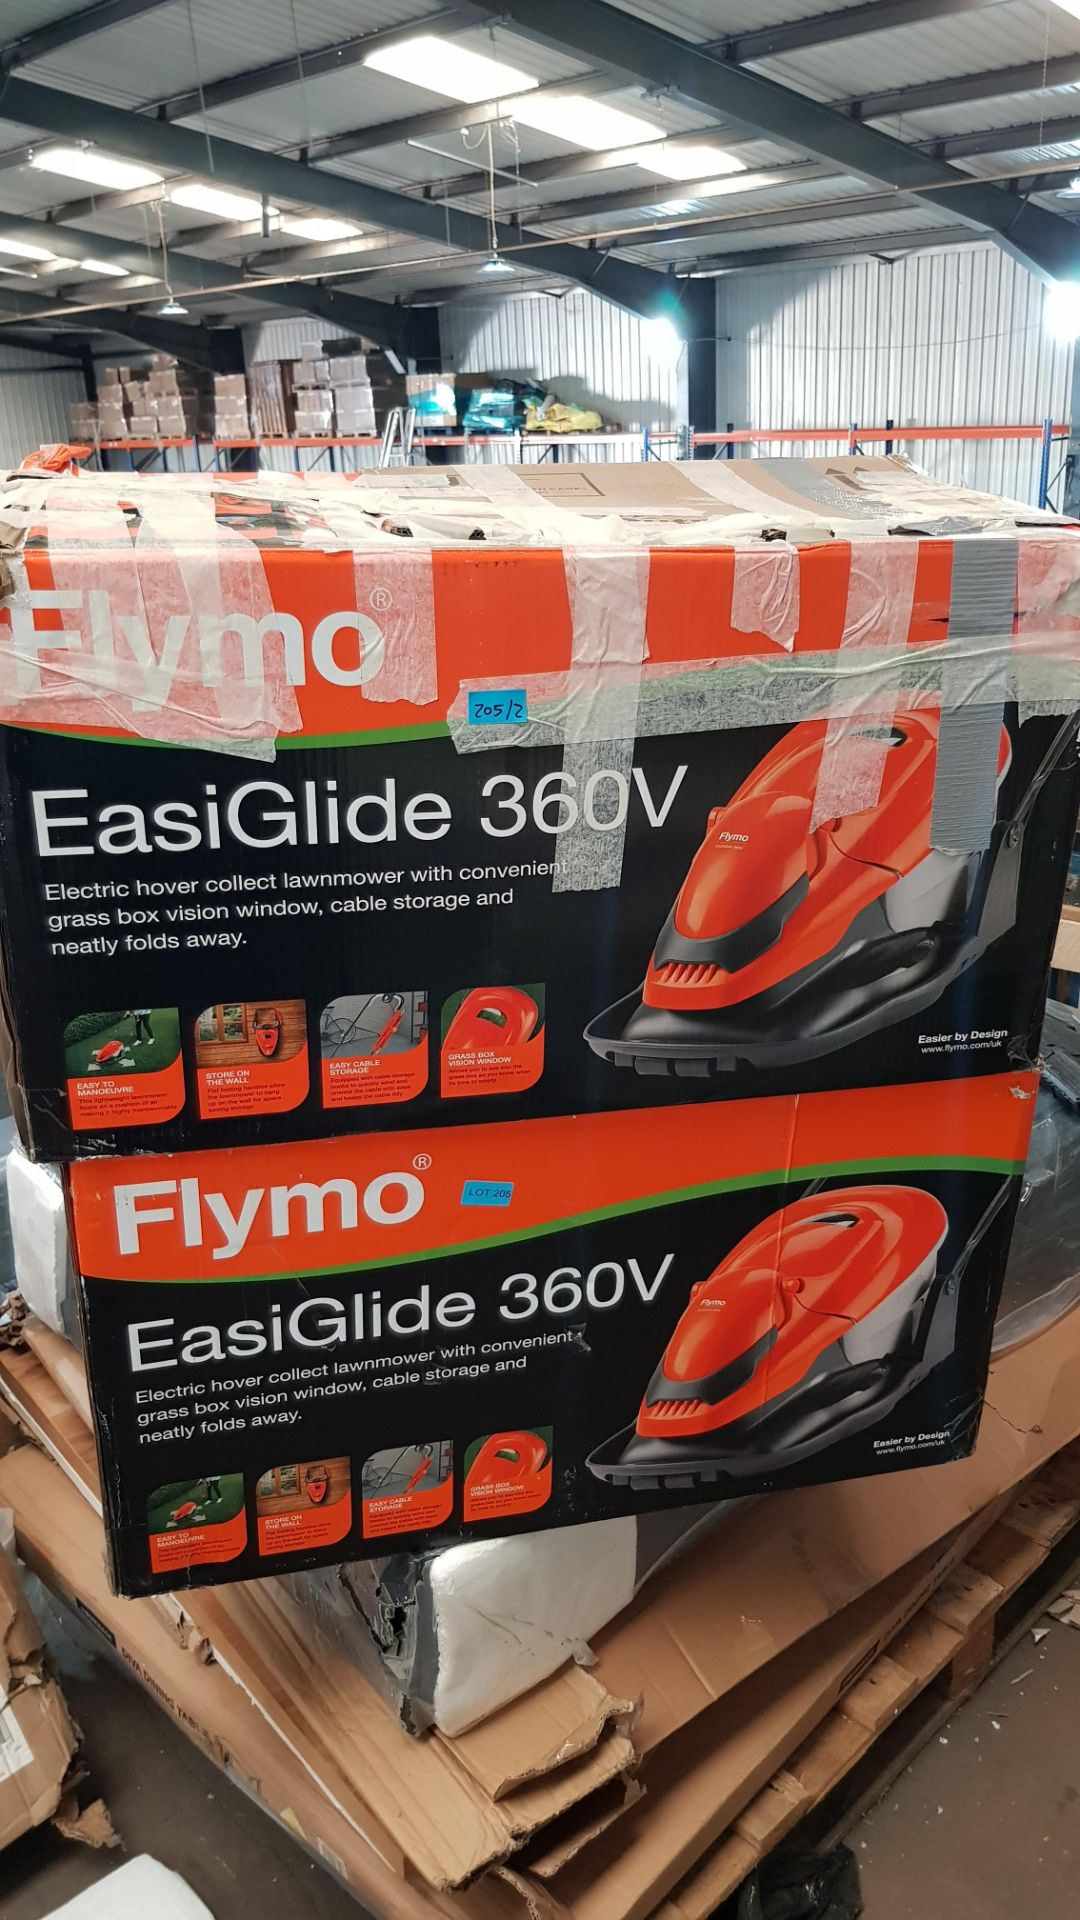 (P7) 2x Flymo EasiGlide 360V Electric Hover Collect Lawnmower RRP £120 Each. - Image 3 of 3